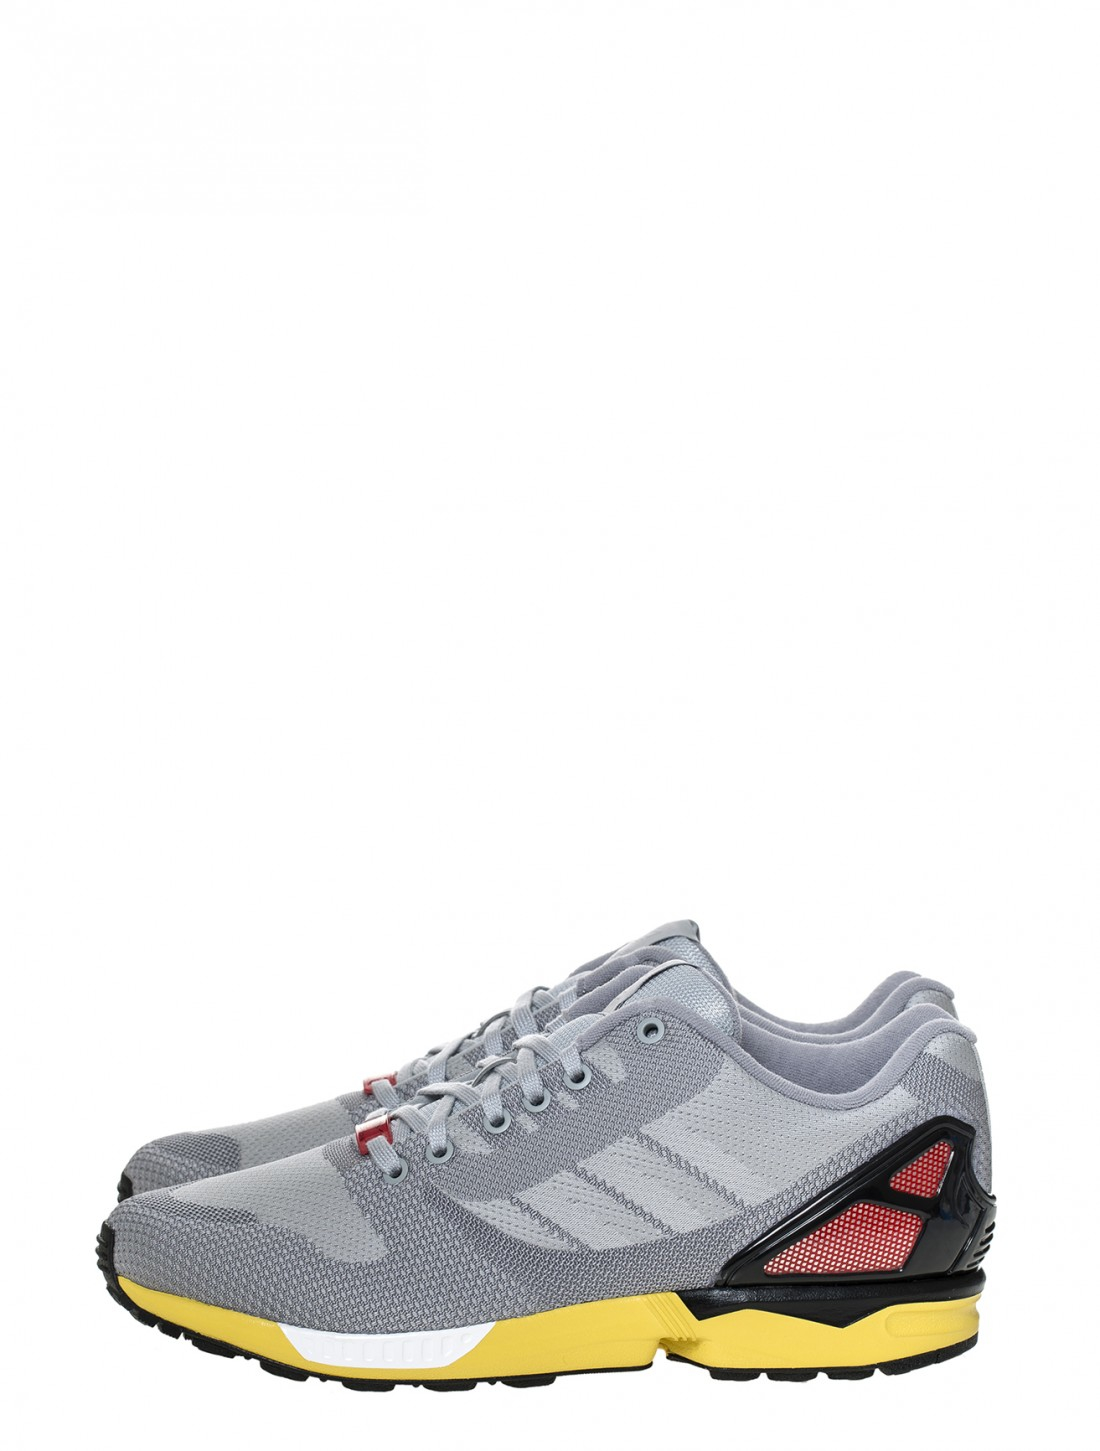 adidas zx flux weave sneaker in gray for men grey lyst. Black Bedroom Furniture Sets. Home Design Ideas